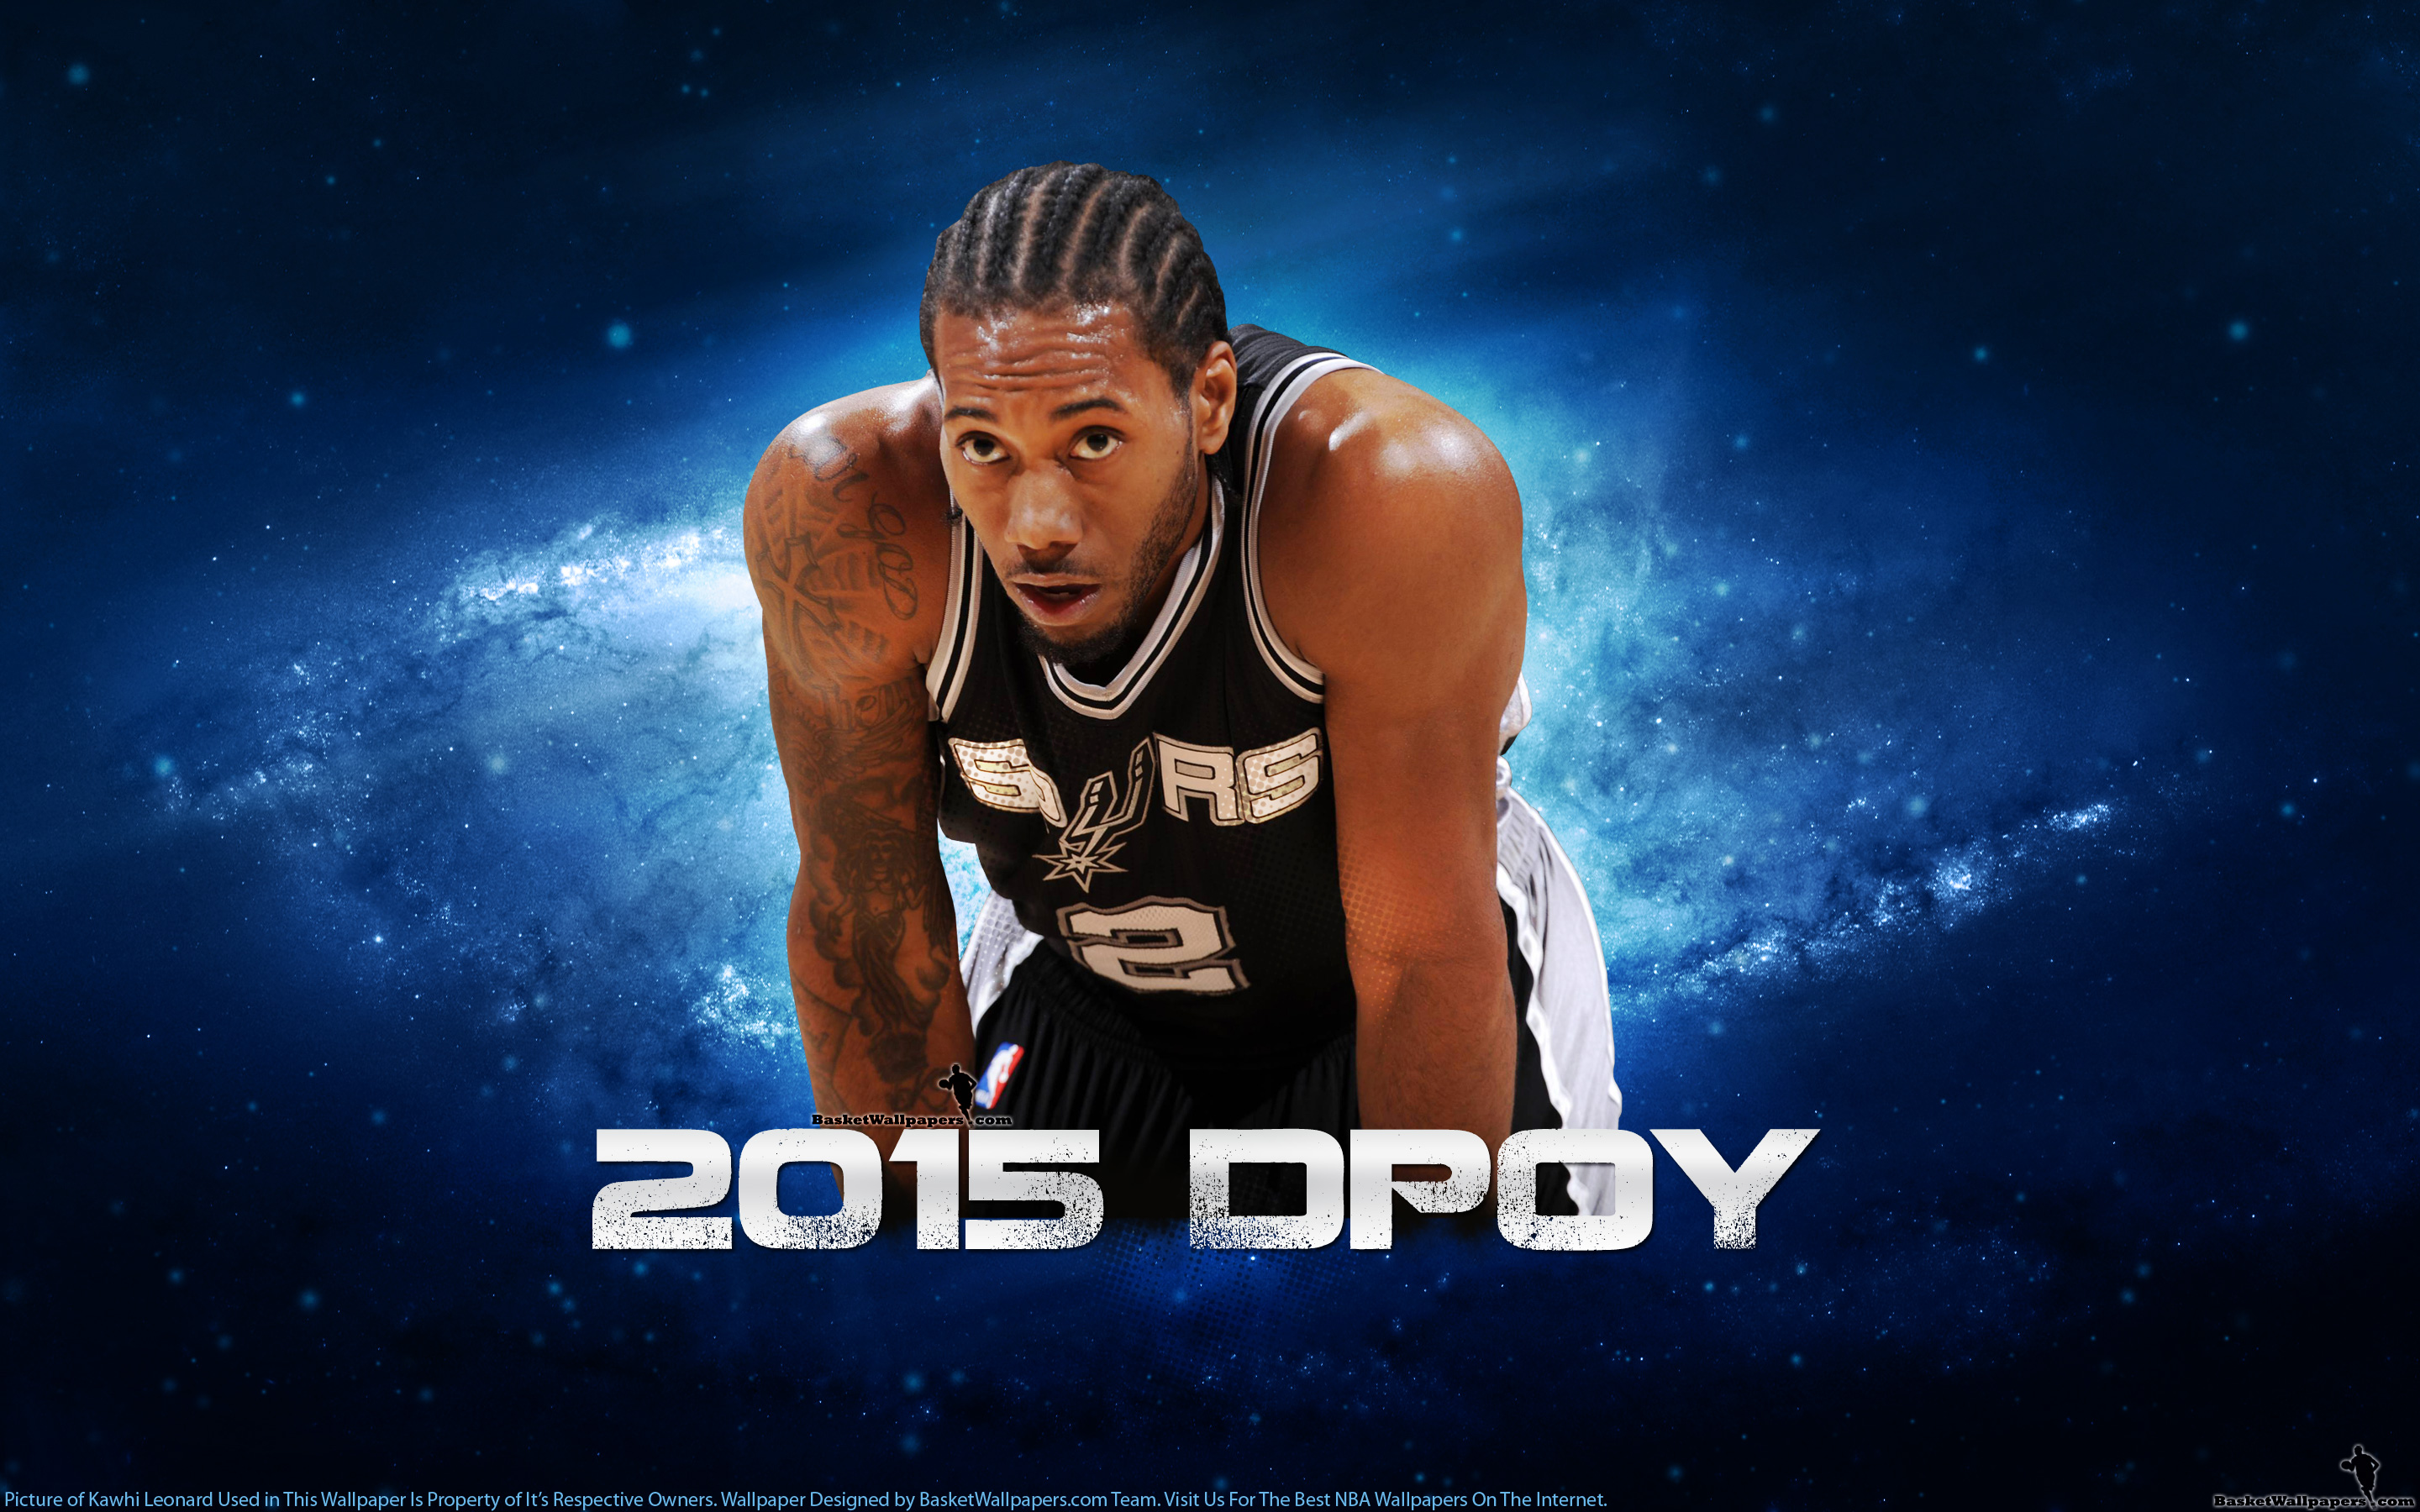 Kawhi Leonard 2015 NBA DPOY Wallpaper | Basketball ...